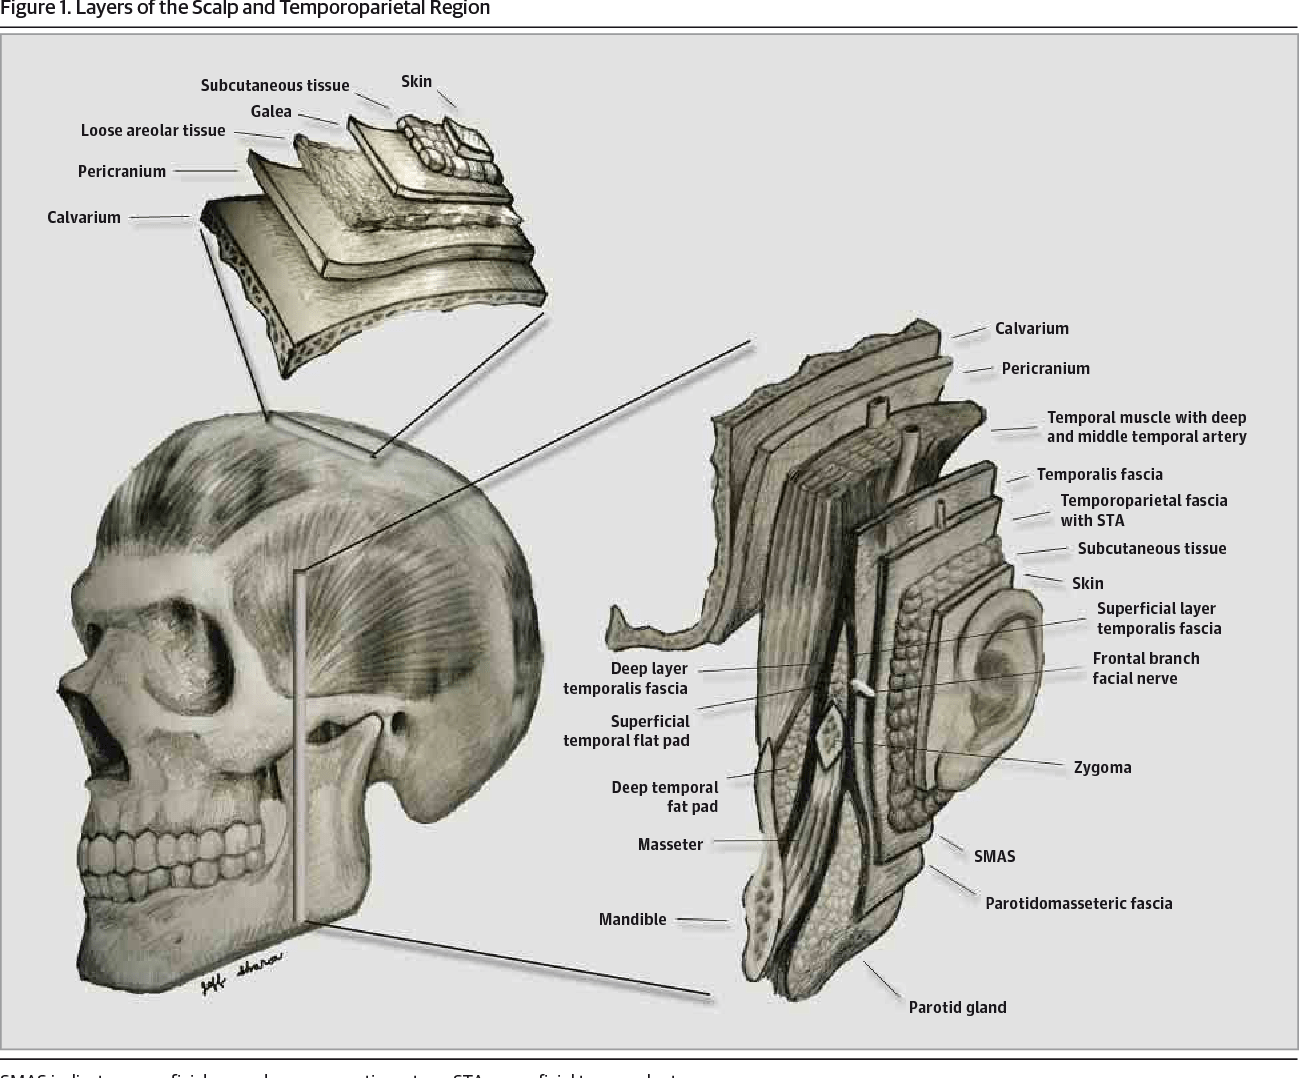 hight resolution of layers of the scalp and temporoparietal region